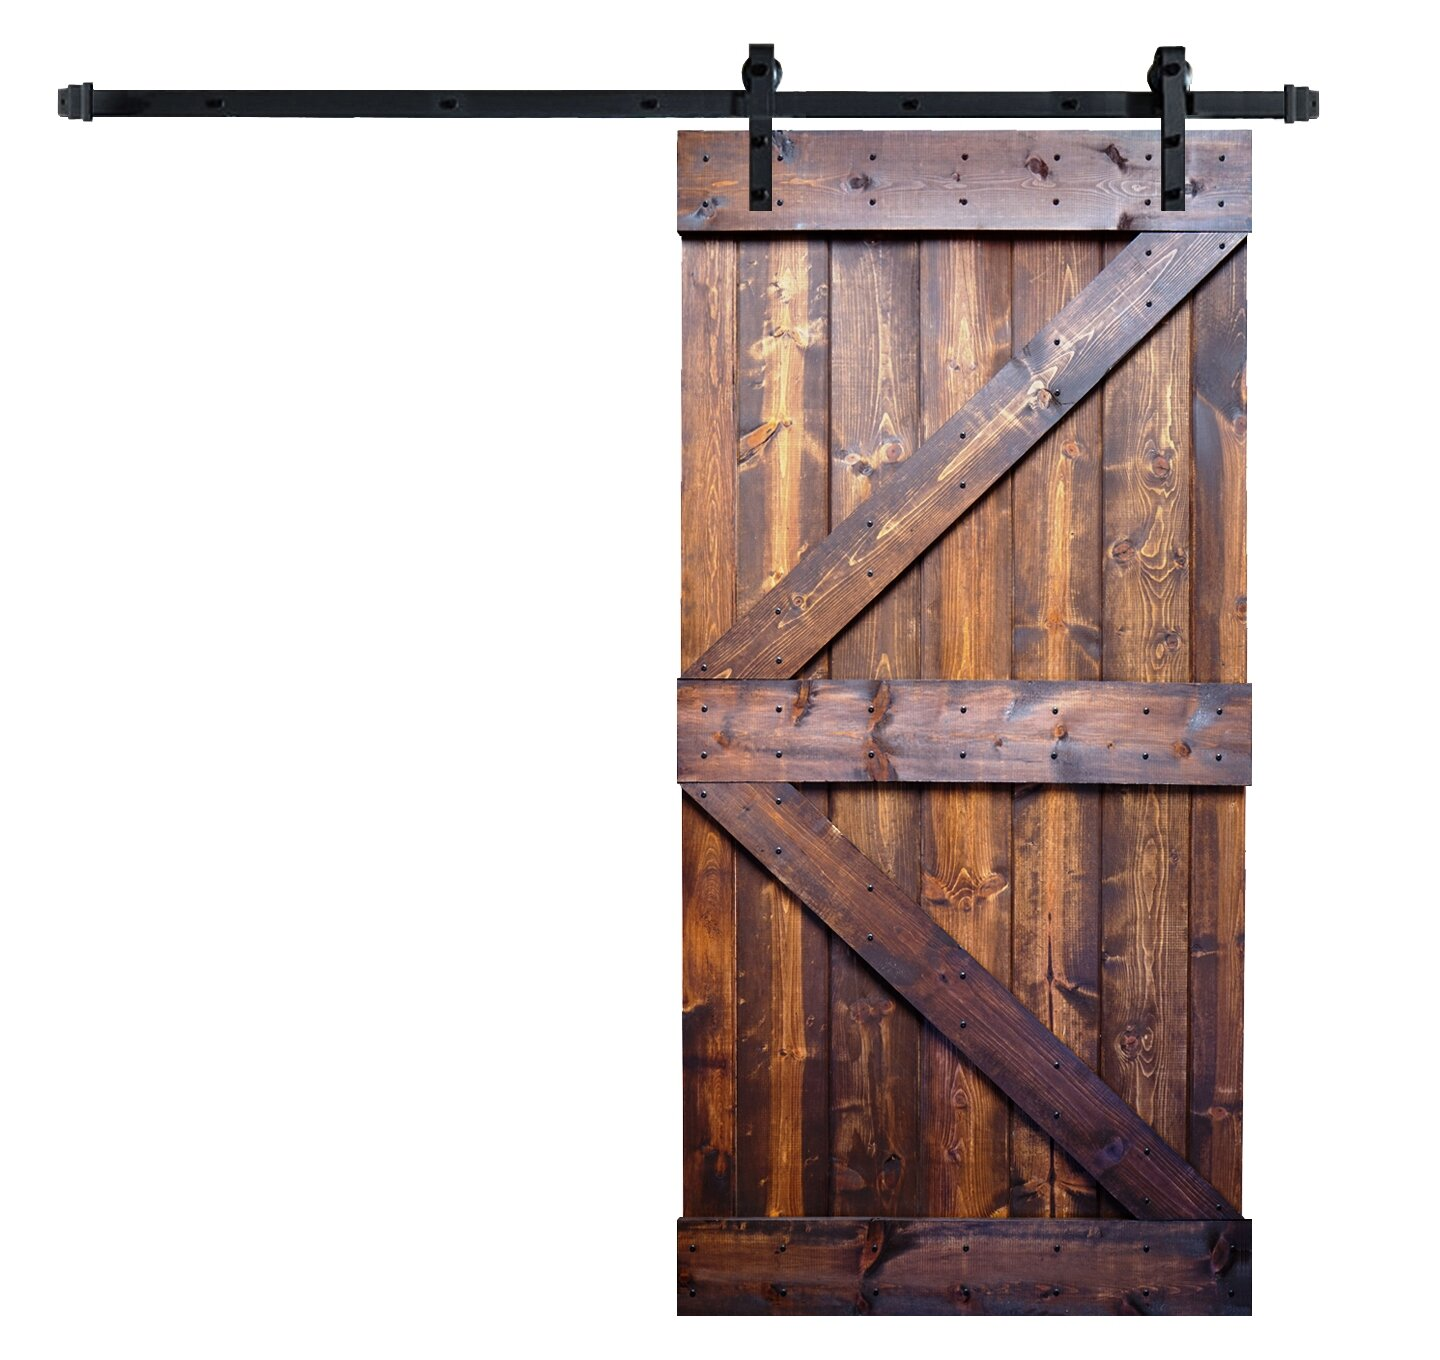 Wellhome Paneled Wood Painted Barn Door With Installation Hardware Kit Reviews